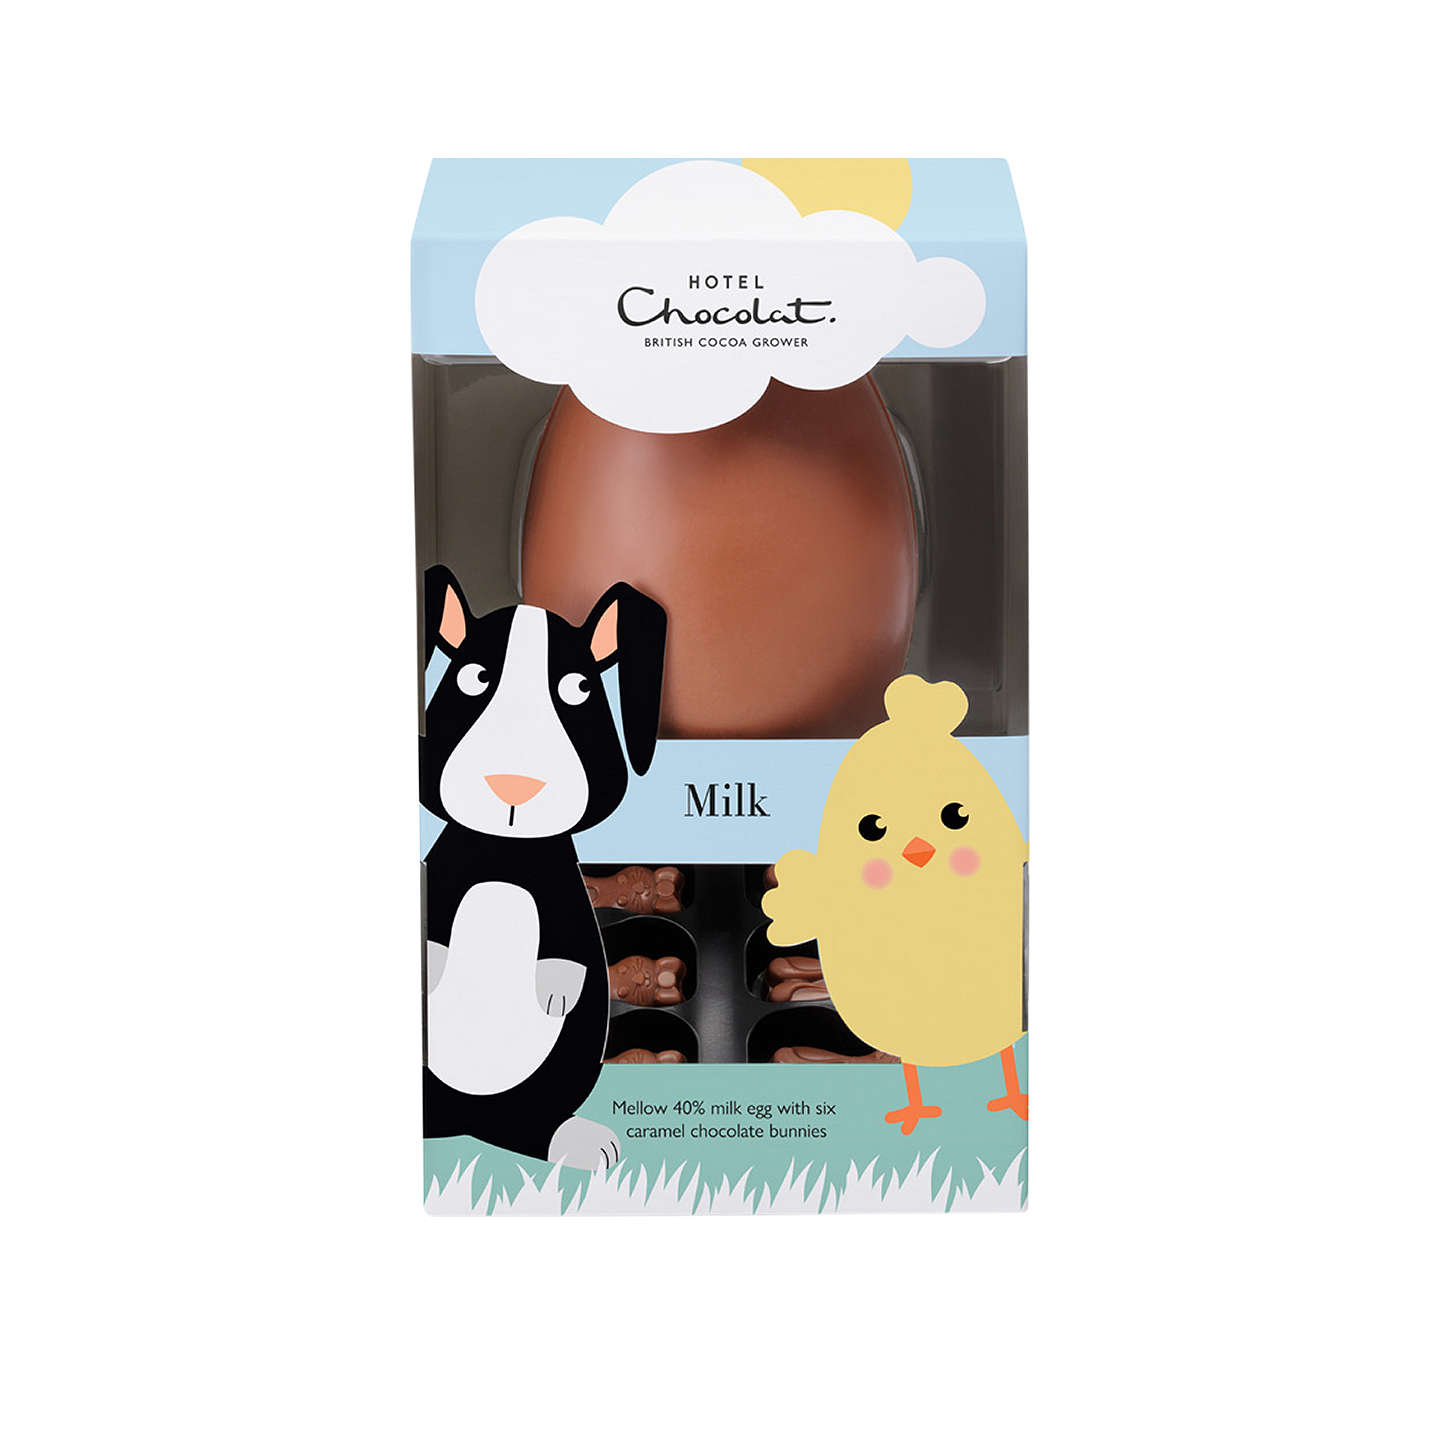 Hotel chocolat childrens easter egg 160g at john lewis buyhotel chocolat childrens easter egg 160g online at johnlewis negle